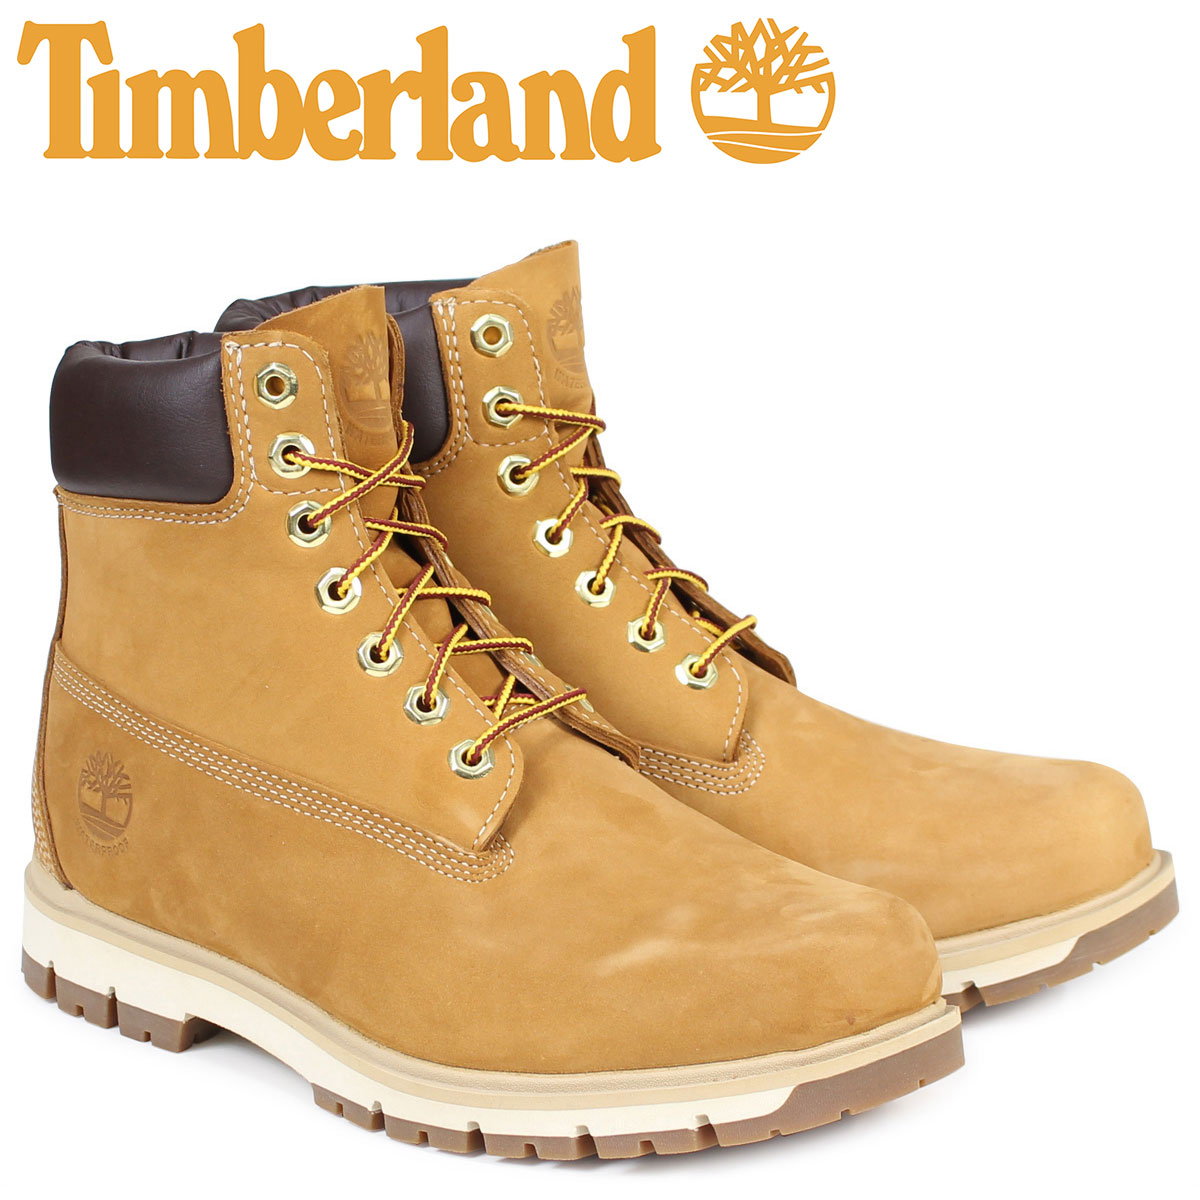 82c6b51a8dd 6 inches of Timberland Timberland boots men RADFORD 6INCH PREMIUM BOOT  A1JHF waterproof W Wise waterproofing brown